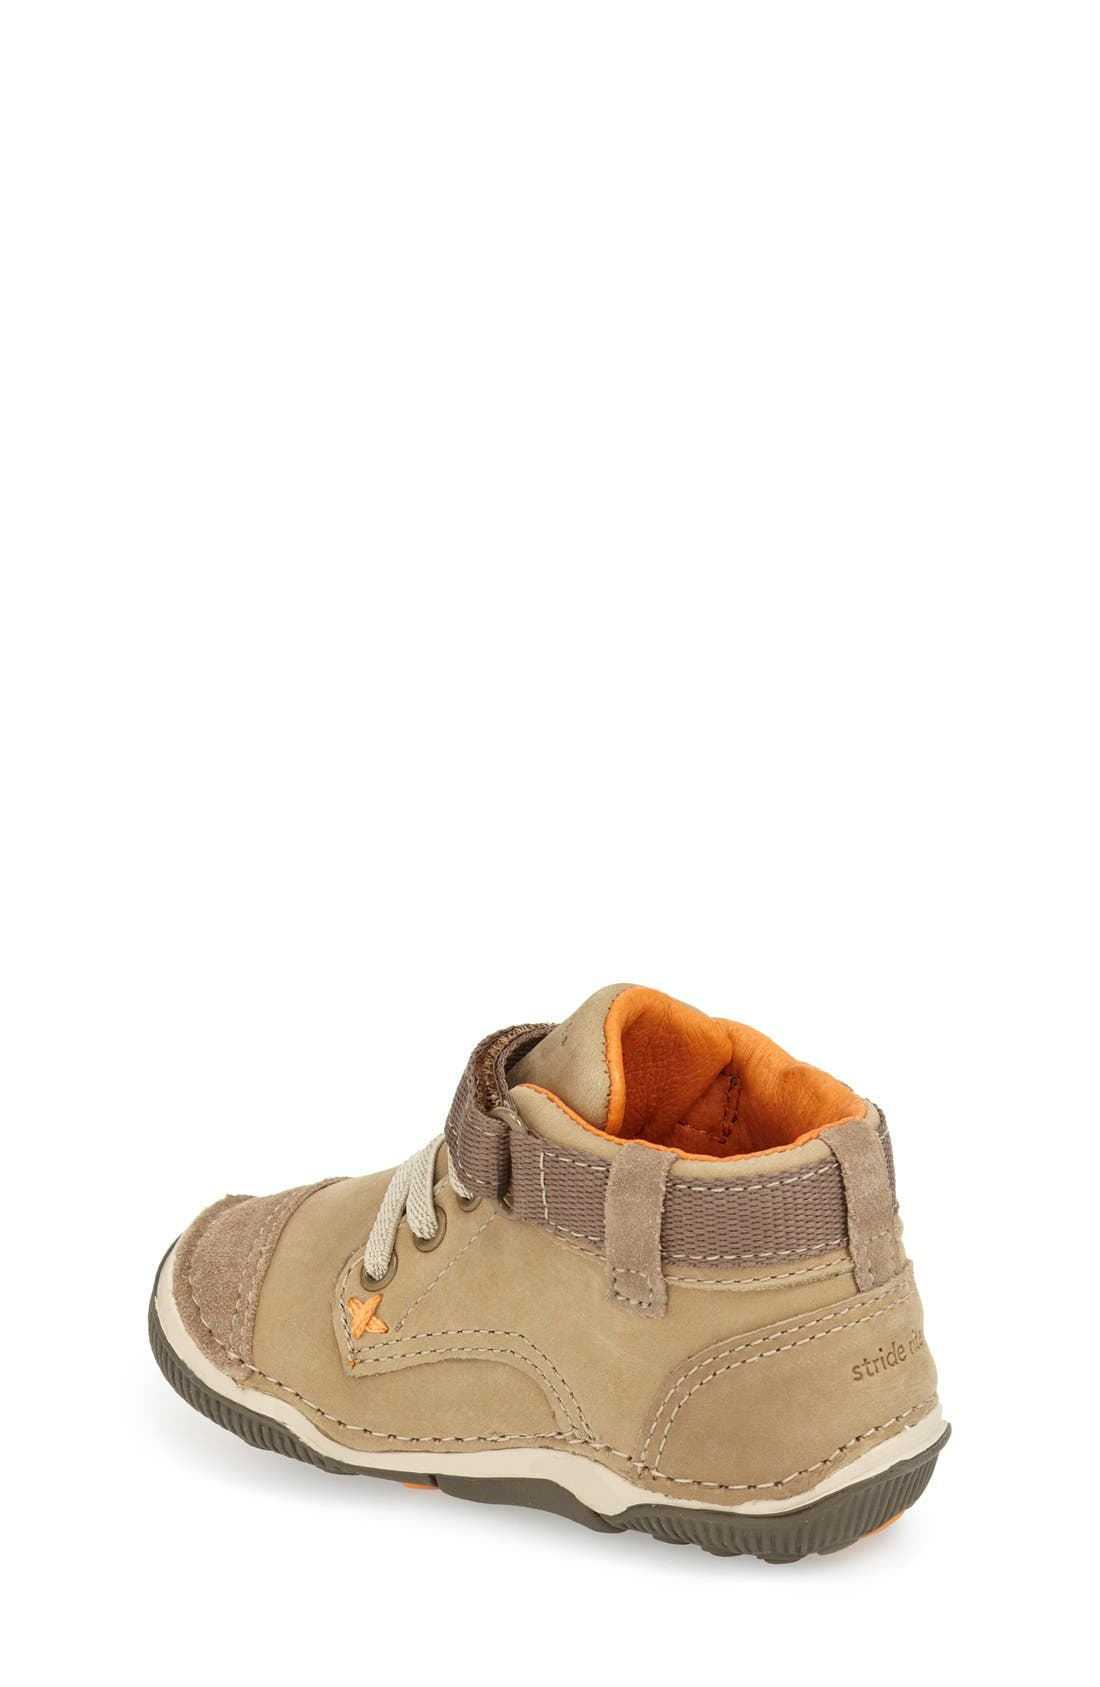 'Garrett' High Top Bootie Sneaker,                             Alternate thumbnail 2, color,                             Brown